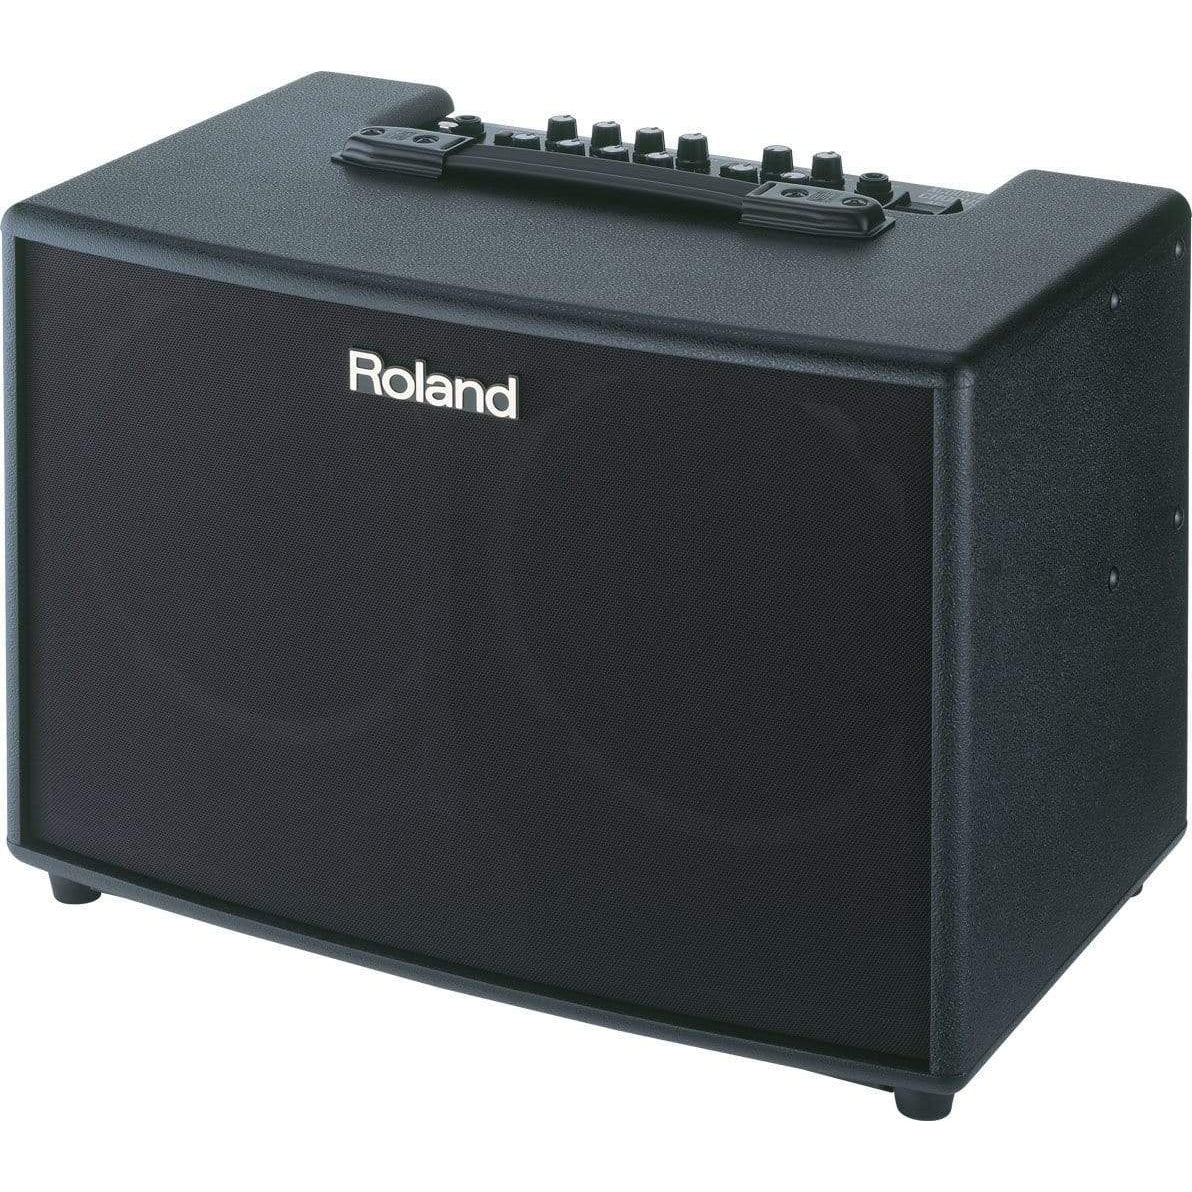 Roland AC-90A Acoustic Chorus Guitar Amplifier